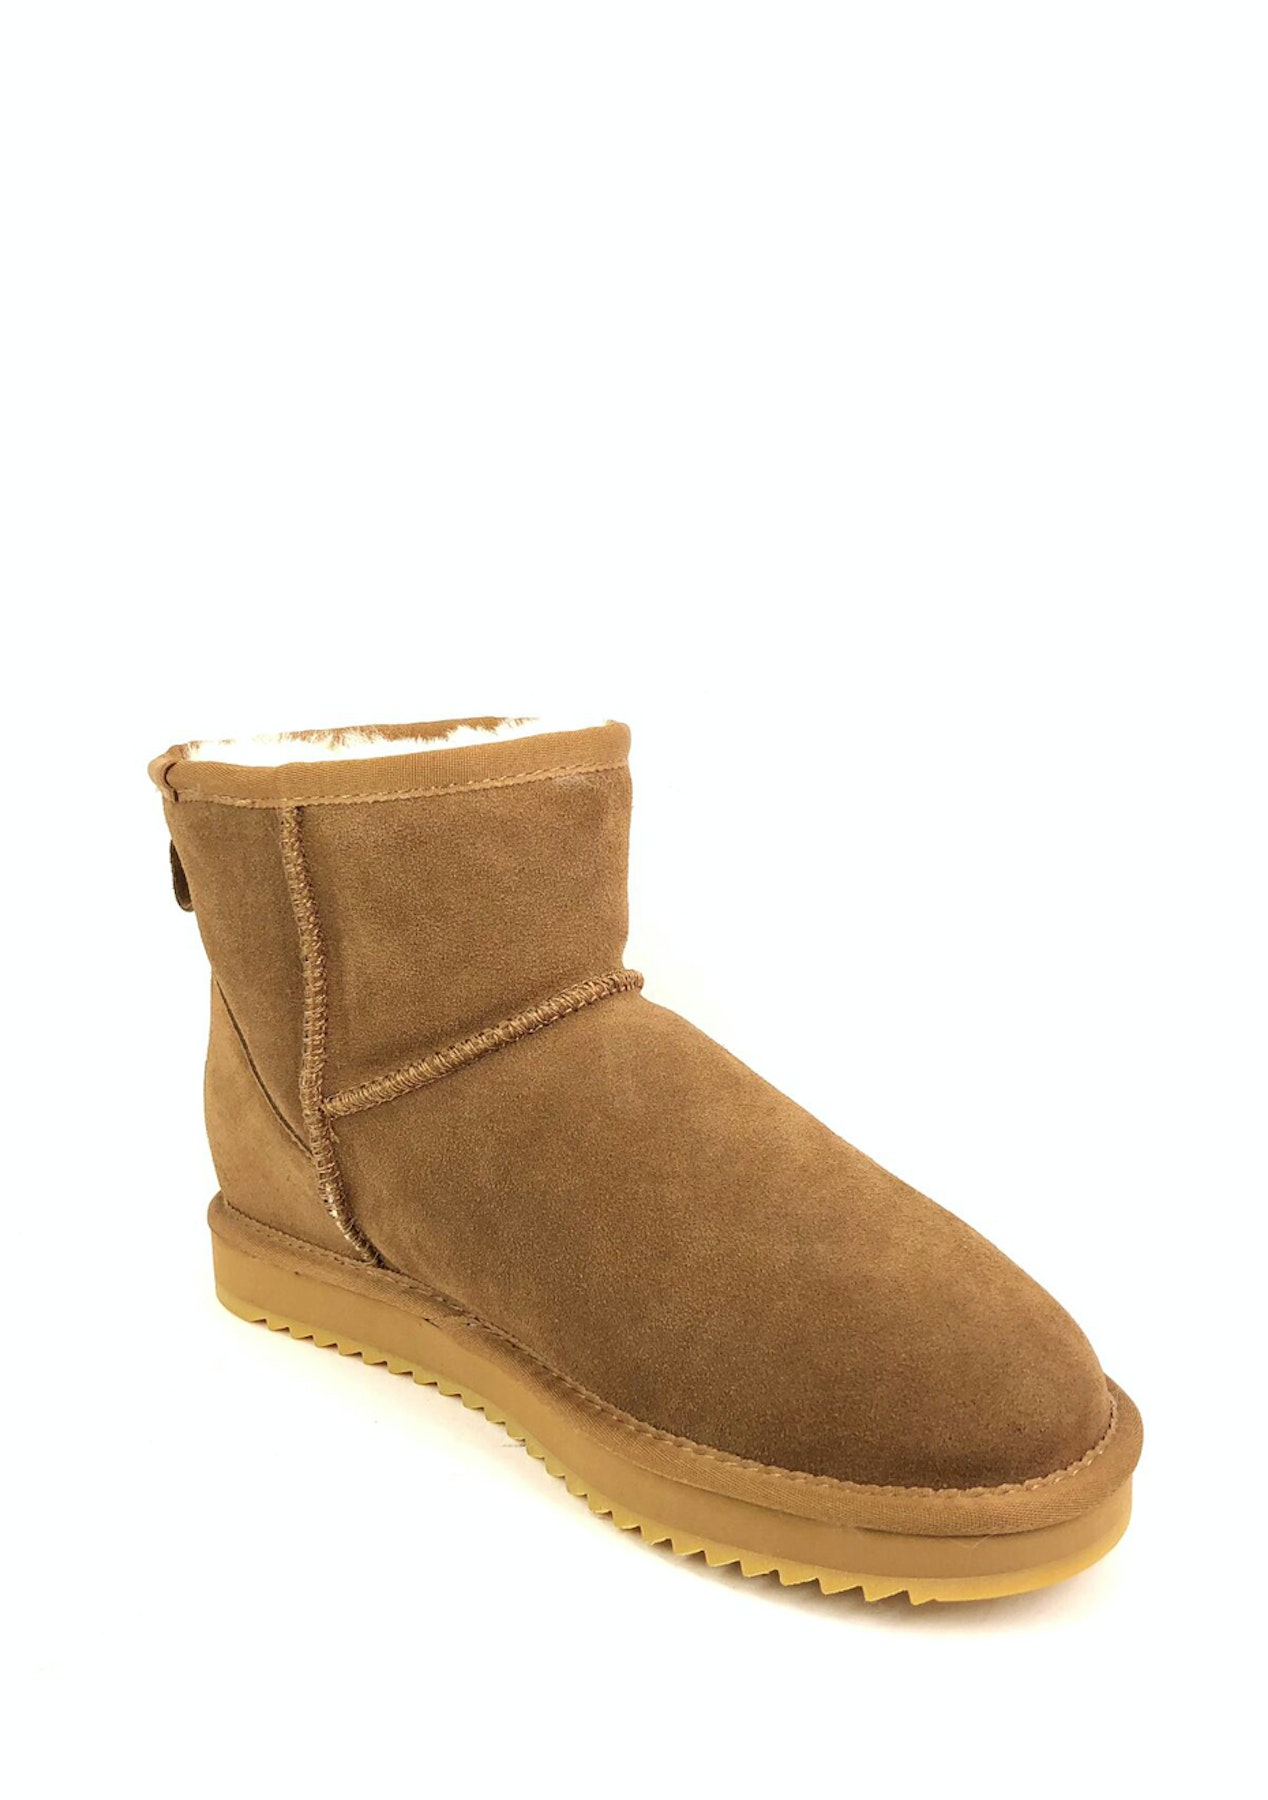 online retailer d61cb 6eda2 Oz Natives UGG - Womens Ultra Short Suede - Chestnut